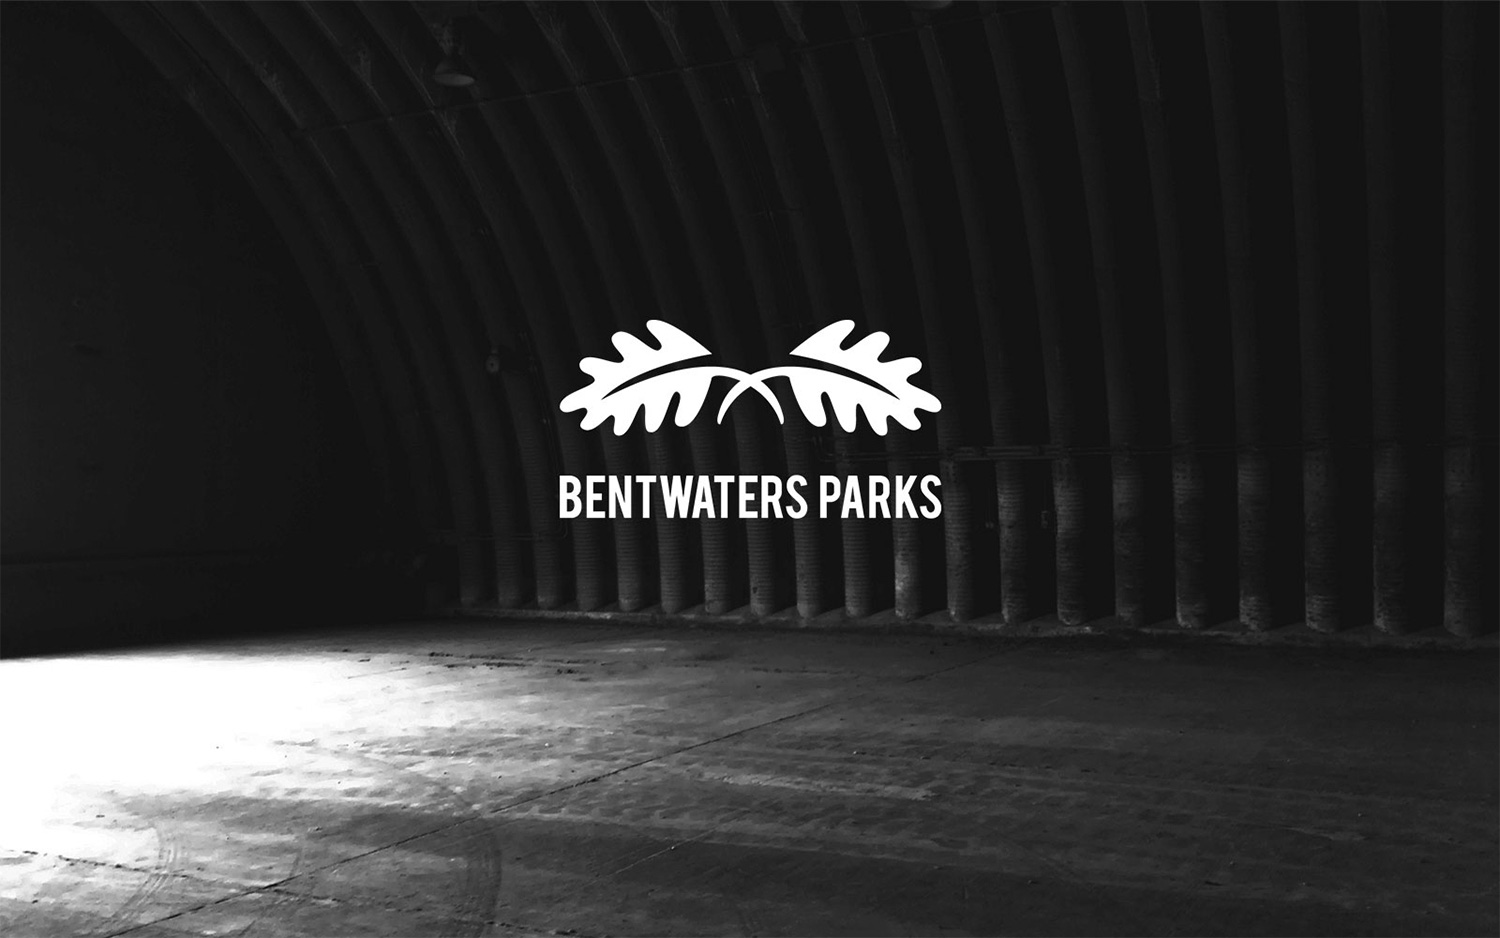 Bentwaters Parks logo black and white